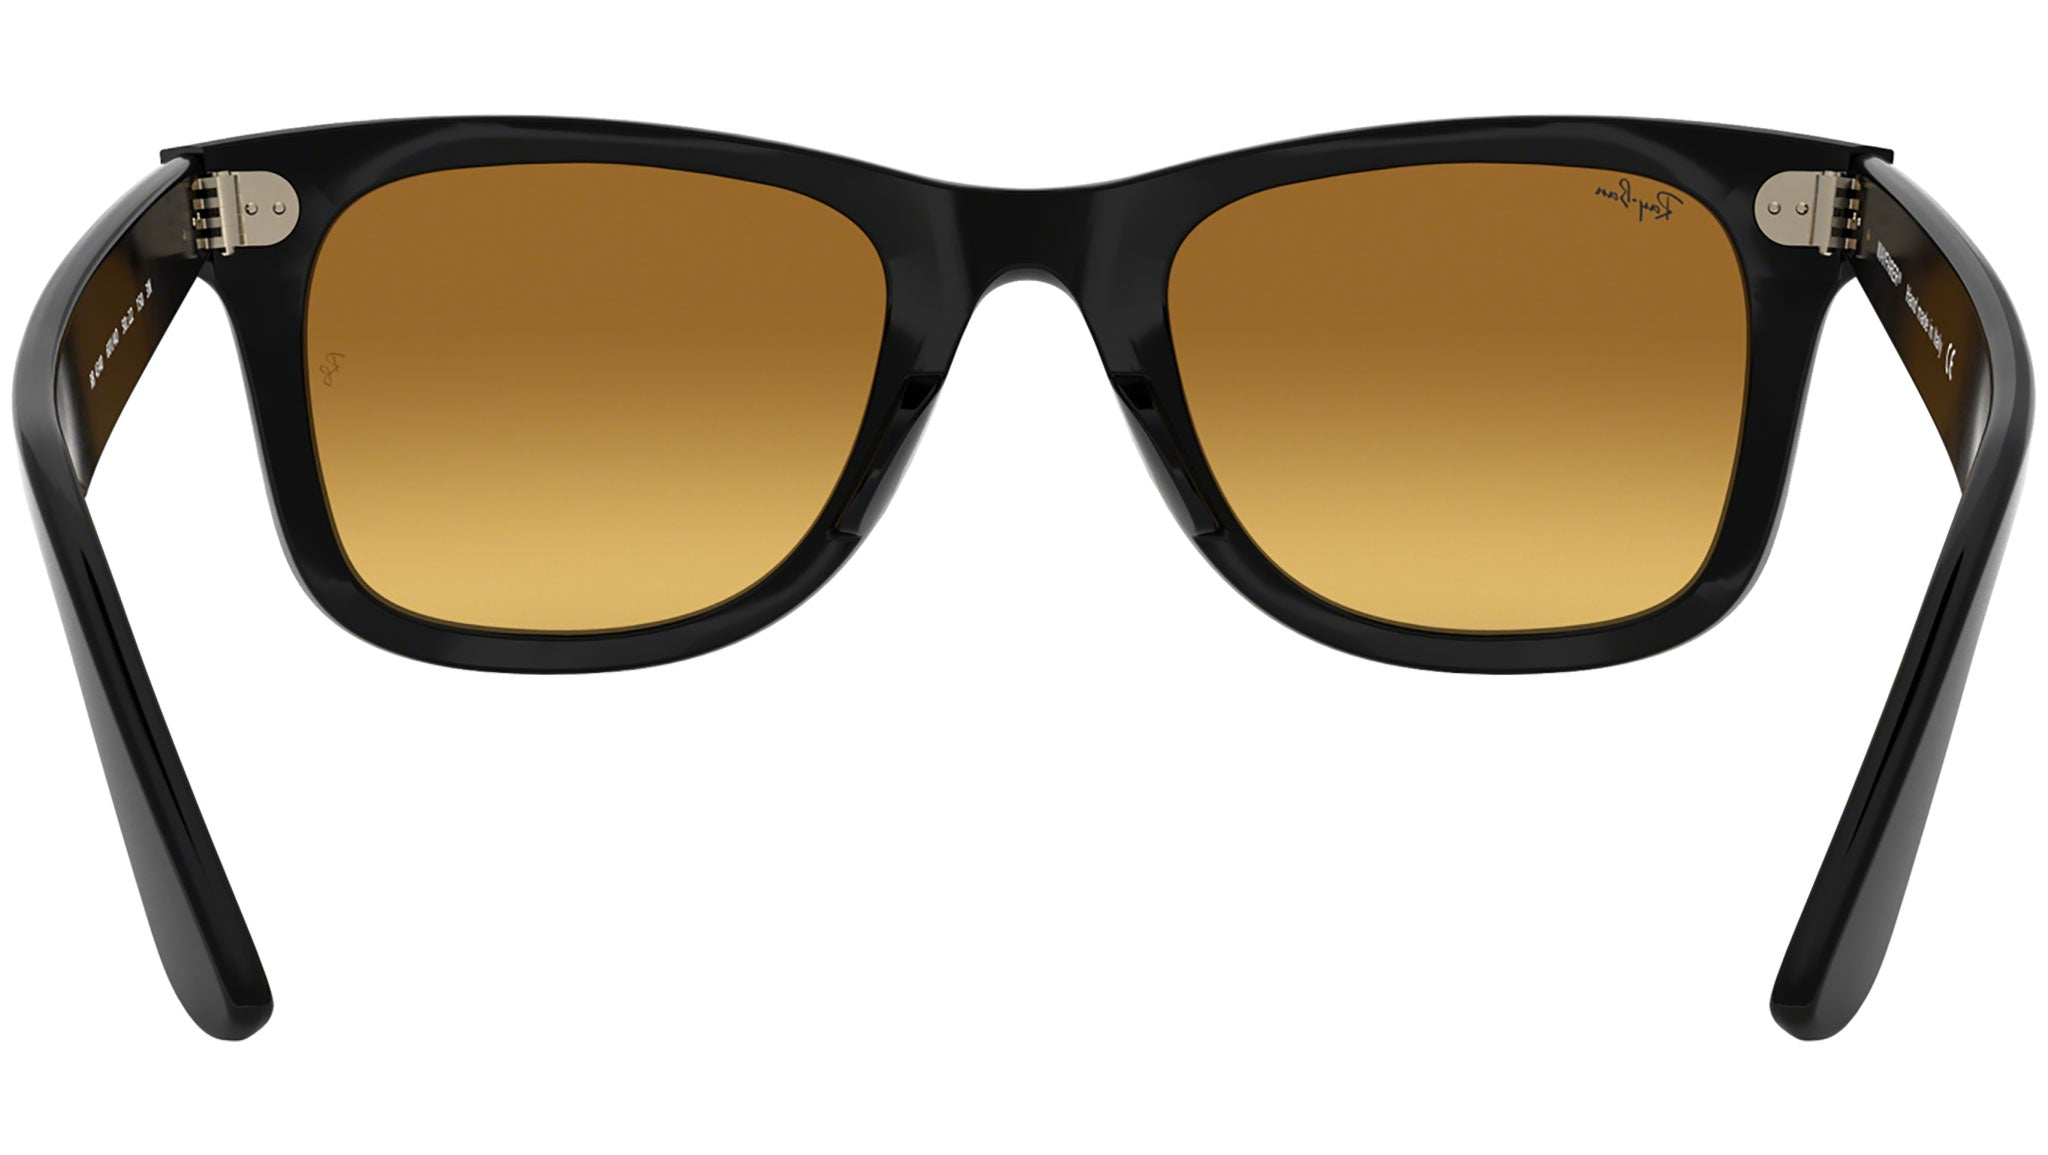 Wayfarer Ease RB4340 black gradient flash